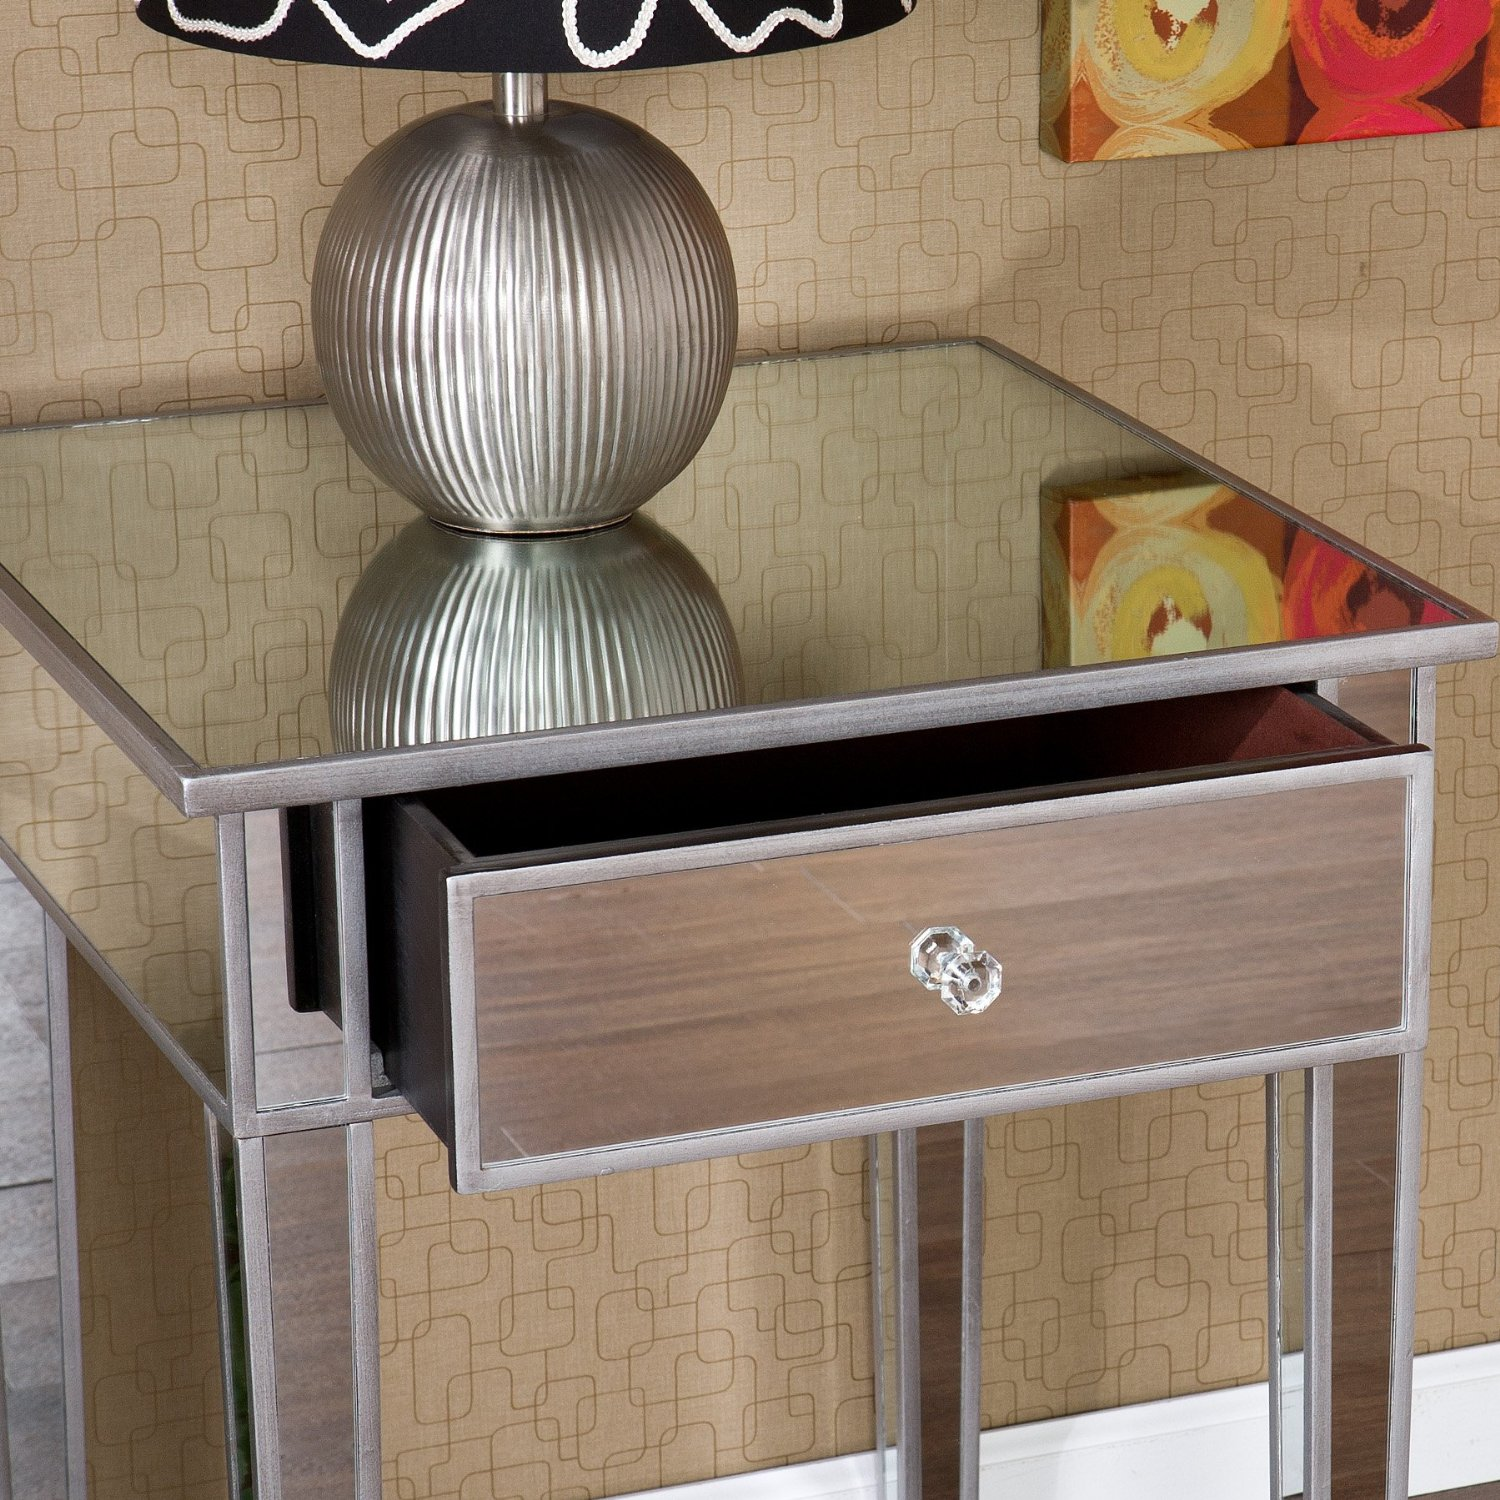 big lots dresser probably terrific great bedroom end tables white skill accent for nightstand mirrored table with drawer and crystal knob unusual corner blytheprojects home ideas